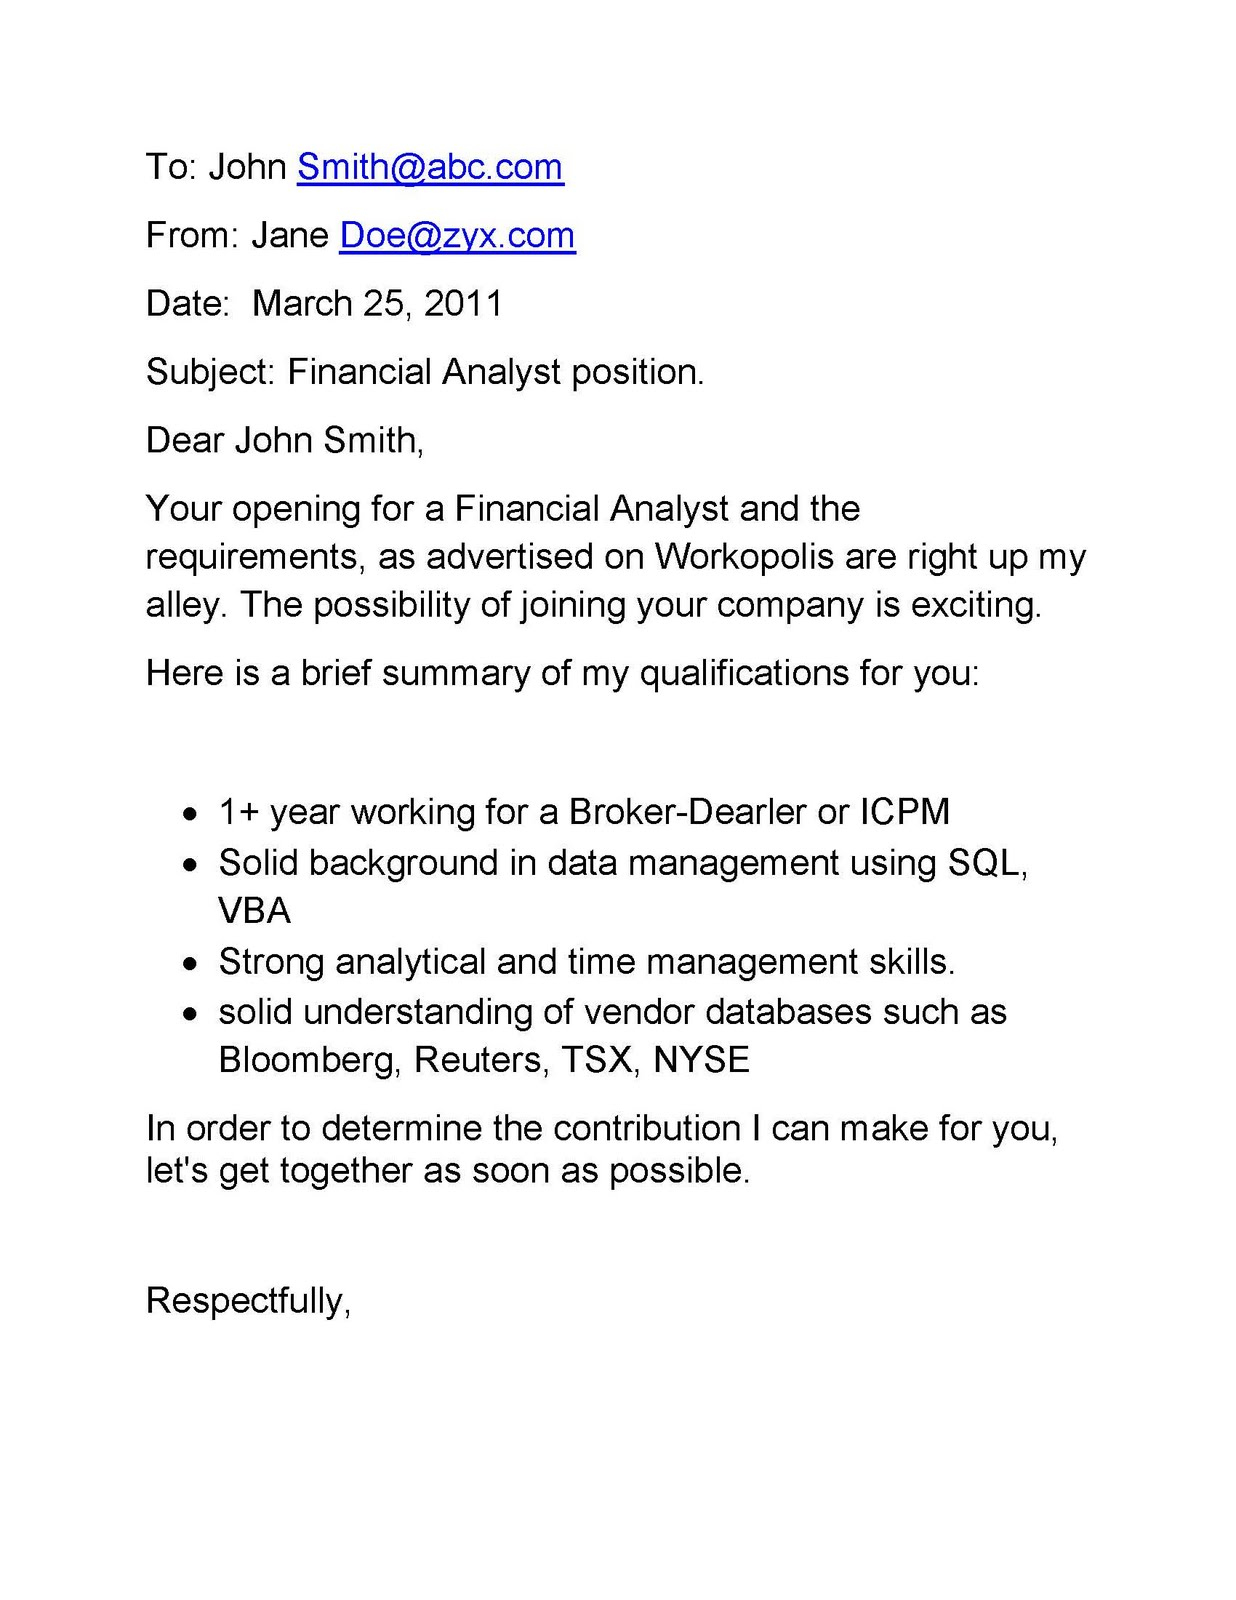 example of email cover letter to job application - search results for cover letter examples email